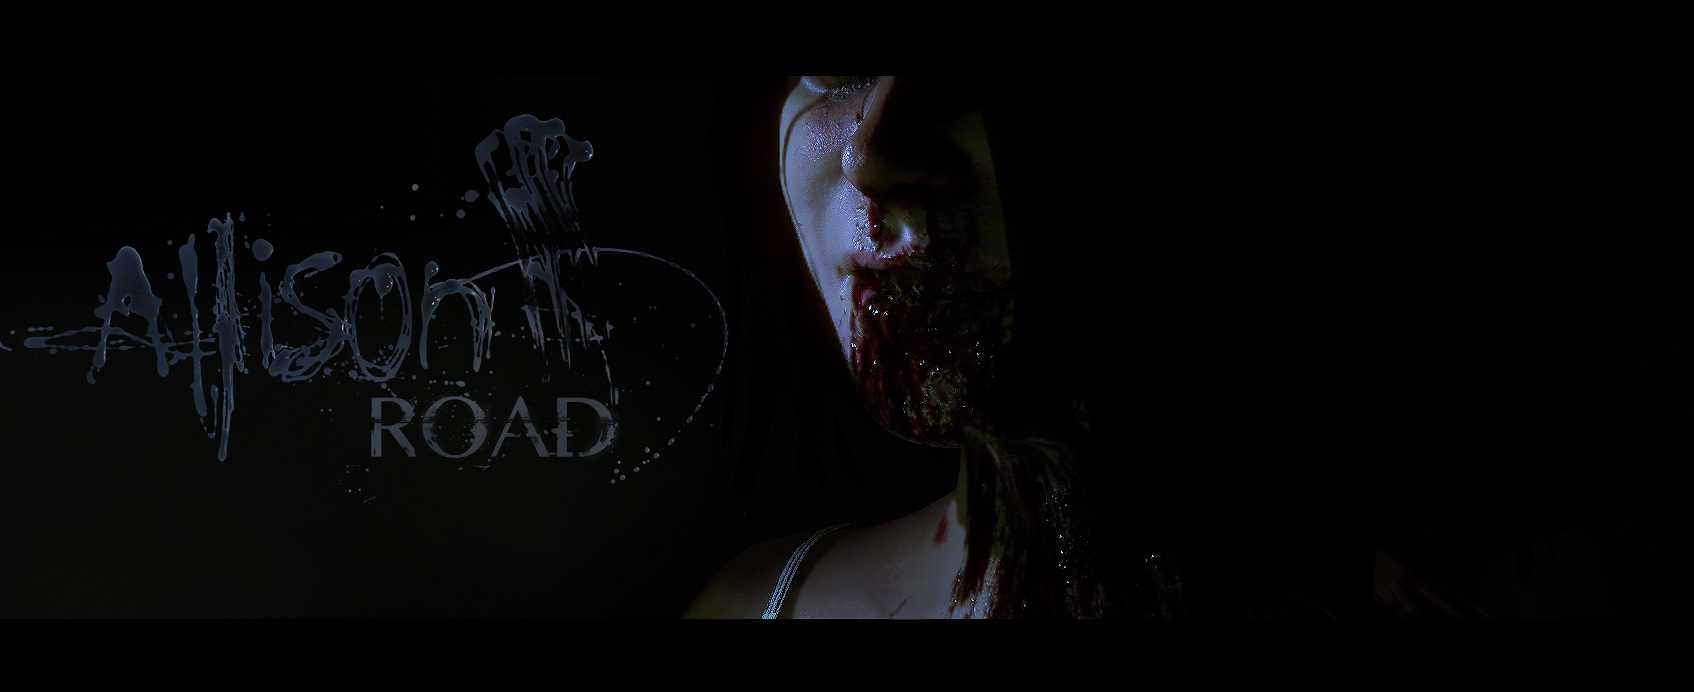 Gameplay footage Allison Road horror game